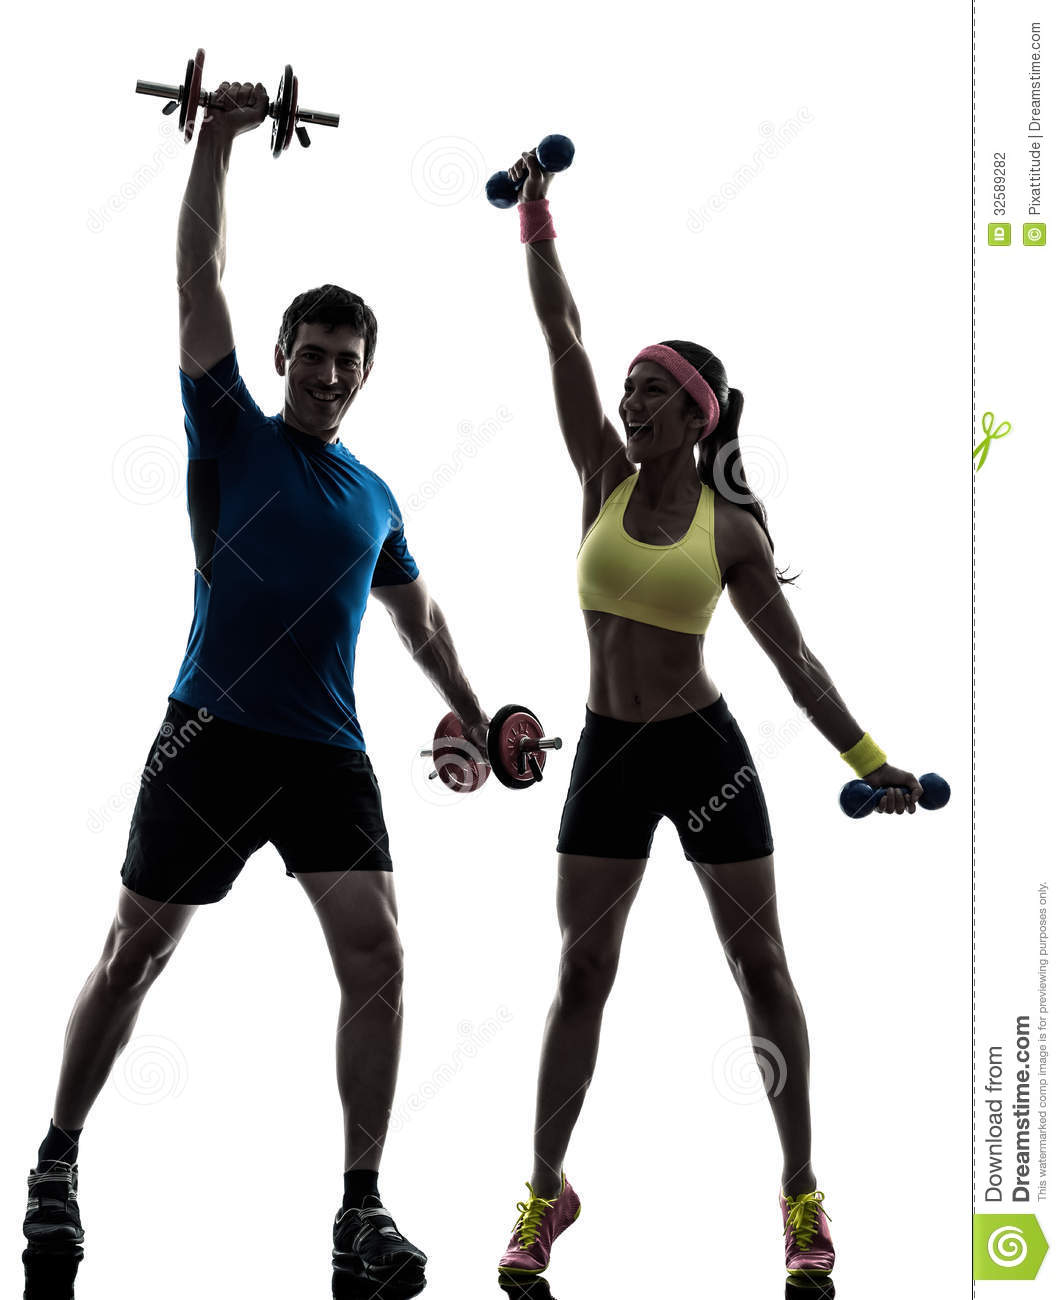 One Women Exercising Fitness Workout With Men Coach In Silhouette On